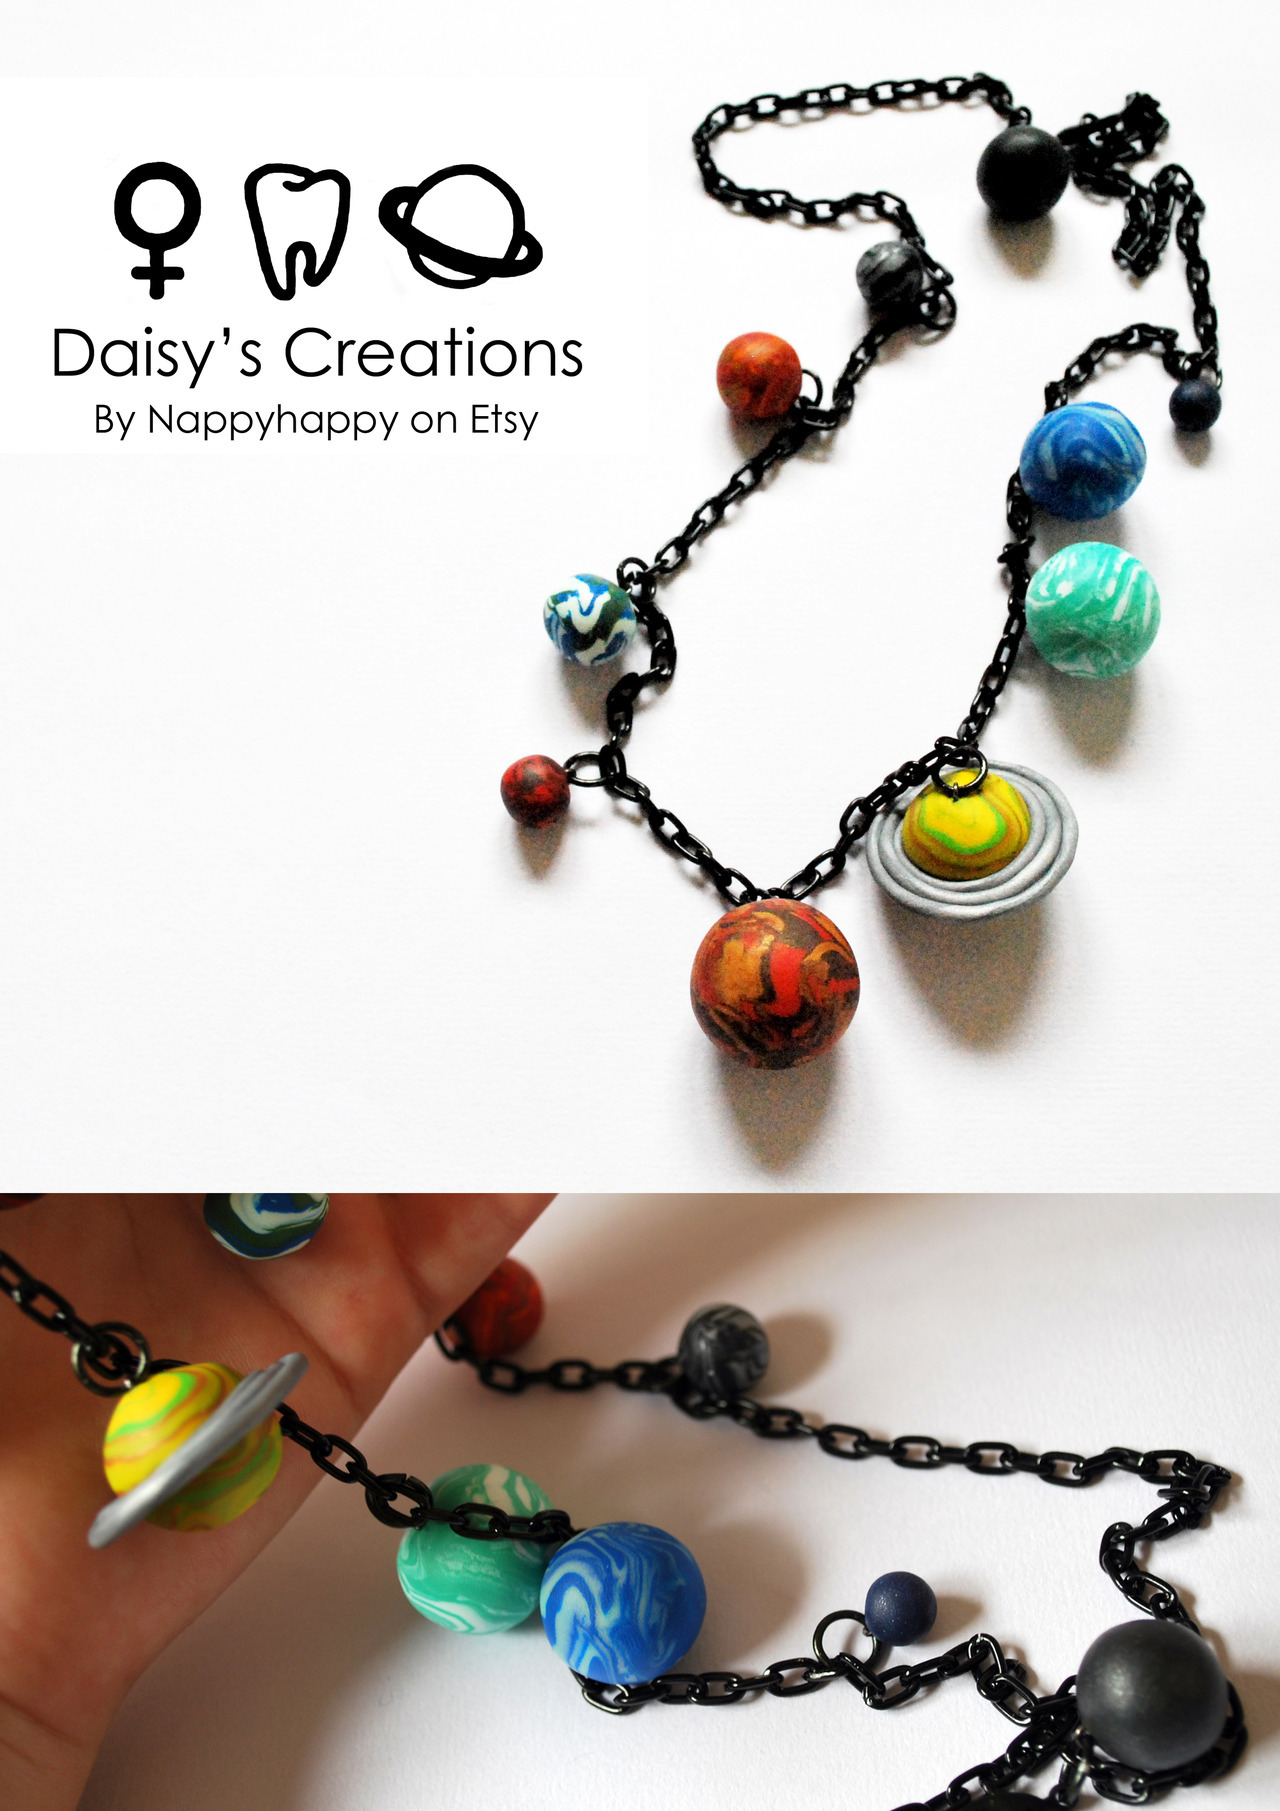 Solar System Necklaces are now available on jet black chain from Daisy's Creations!